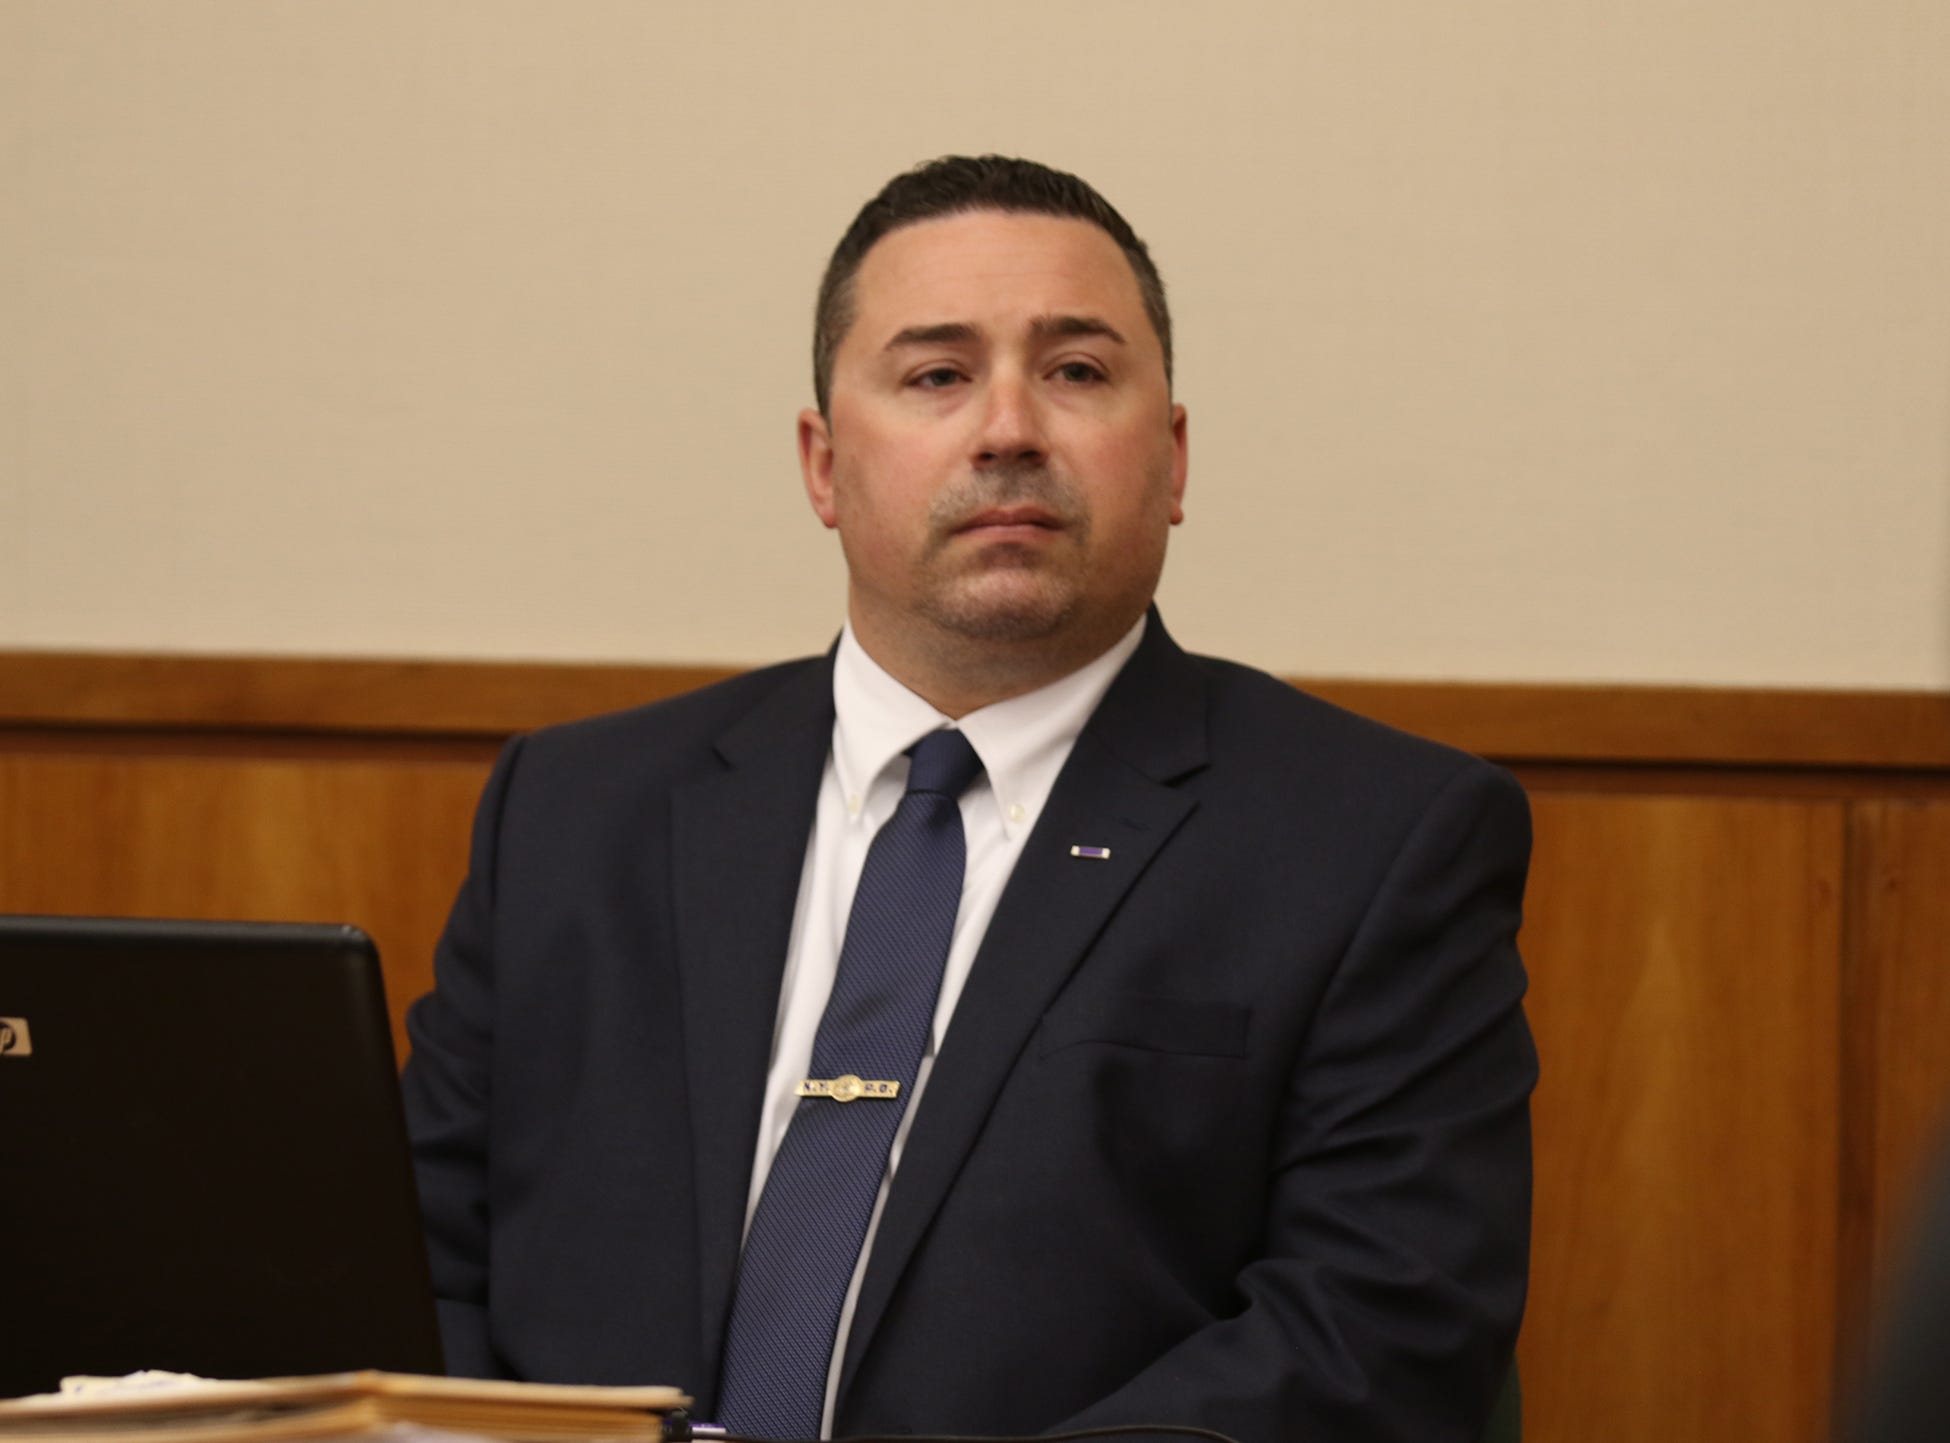 Rochester Police Officer Michael Sippel chose a bench trial.